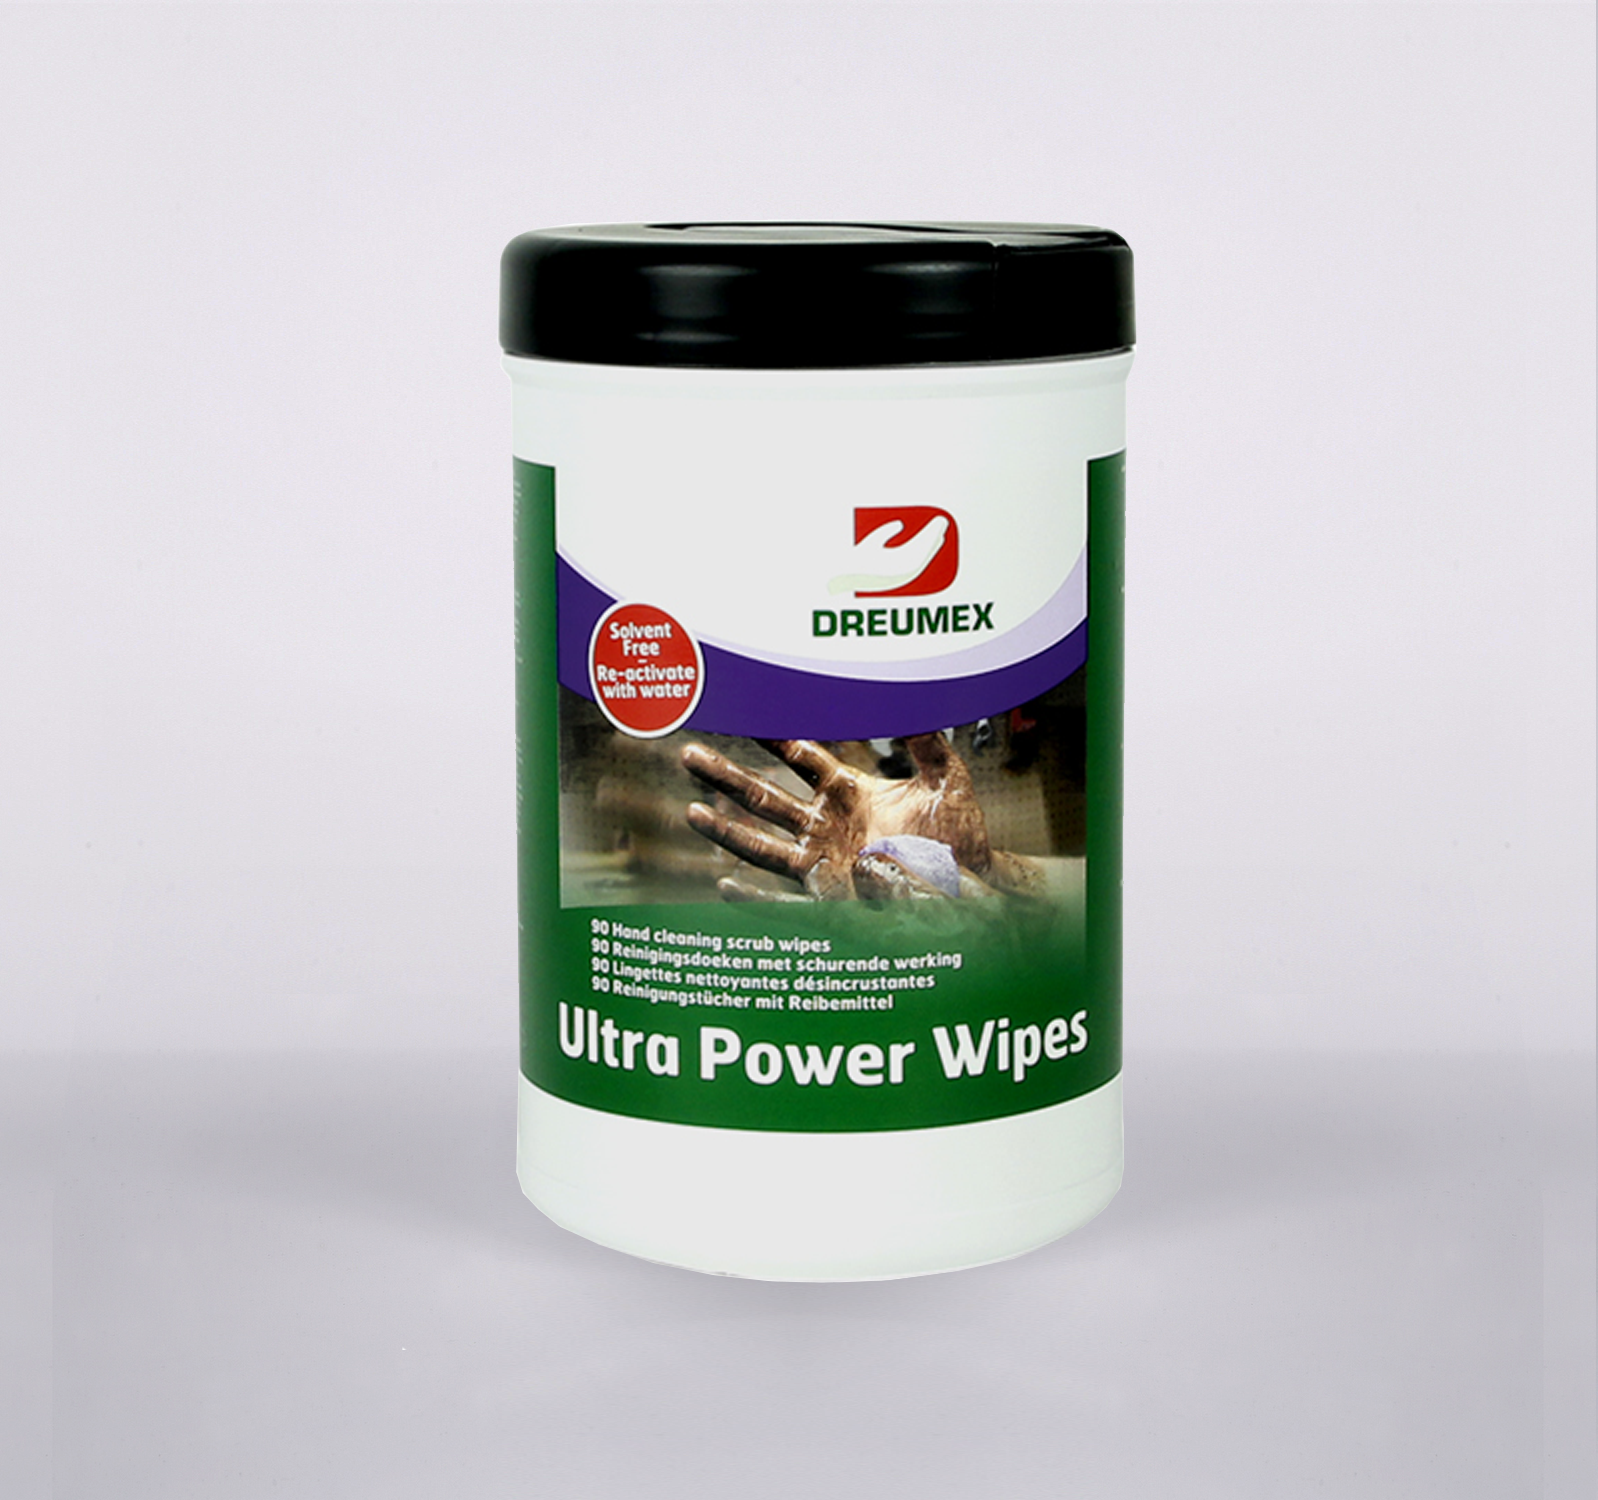 Dreumex Ultra Power Wipes